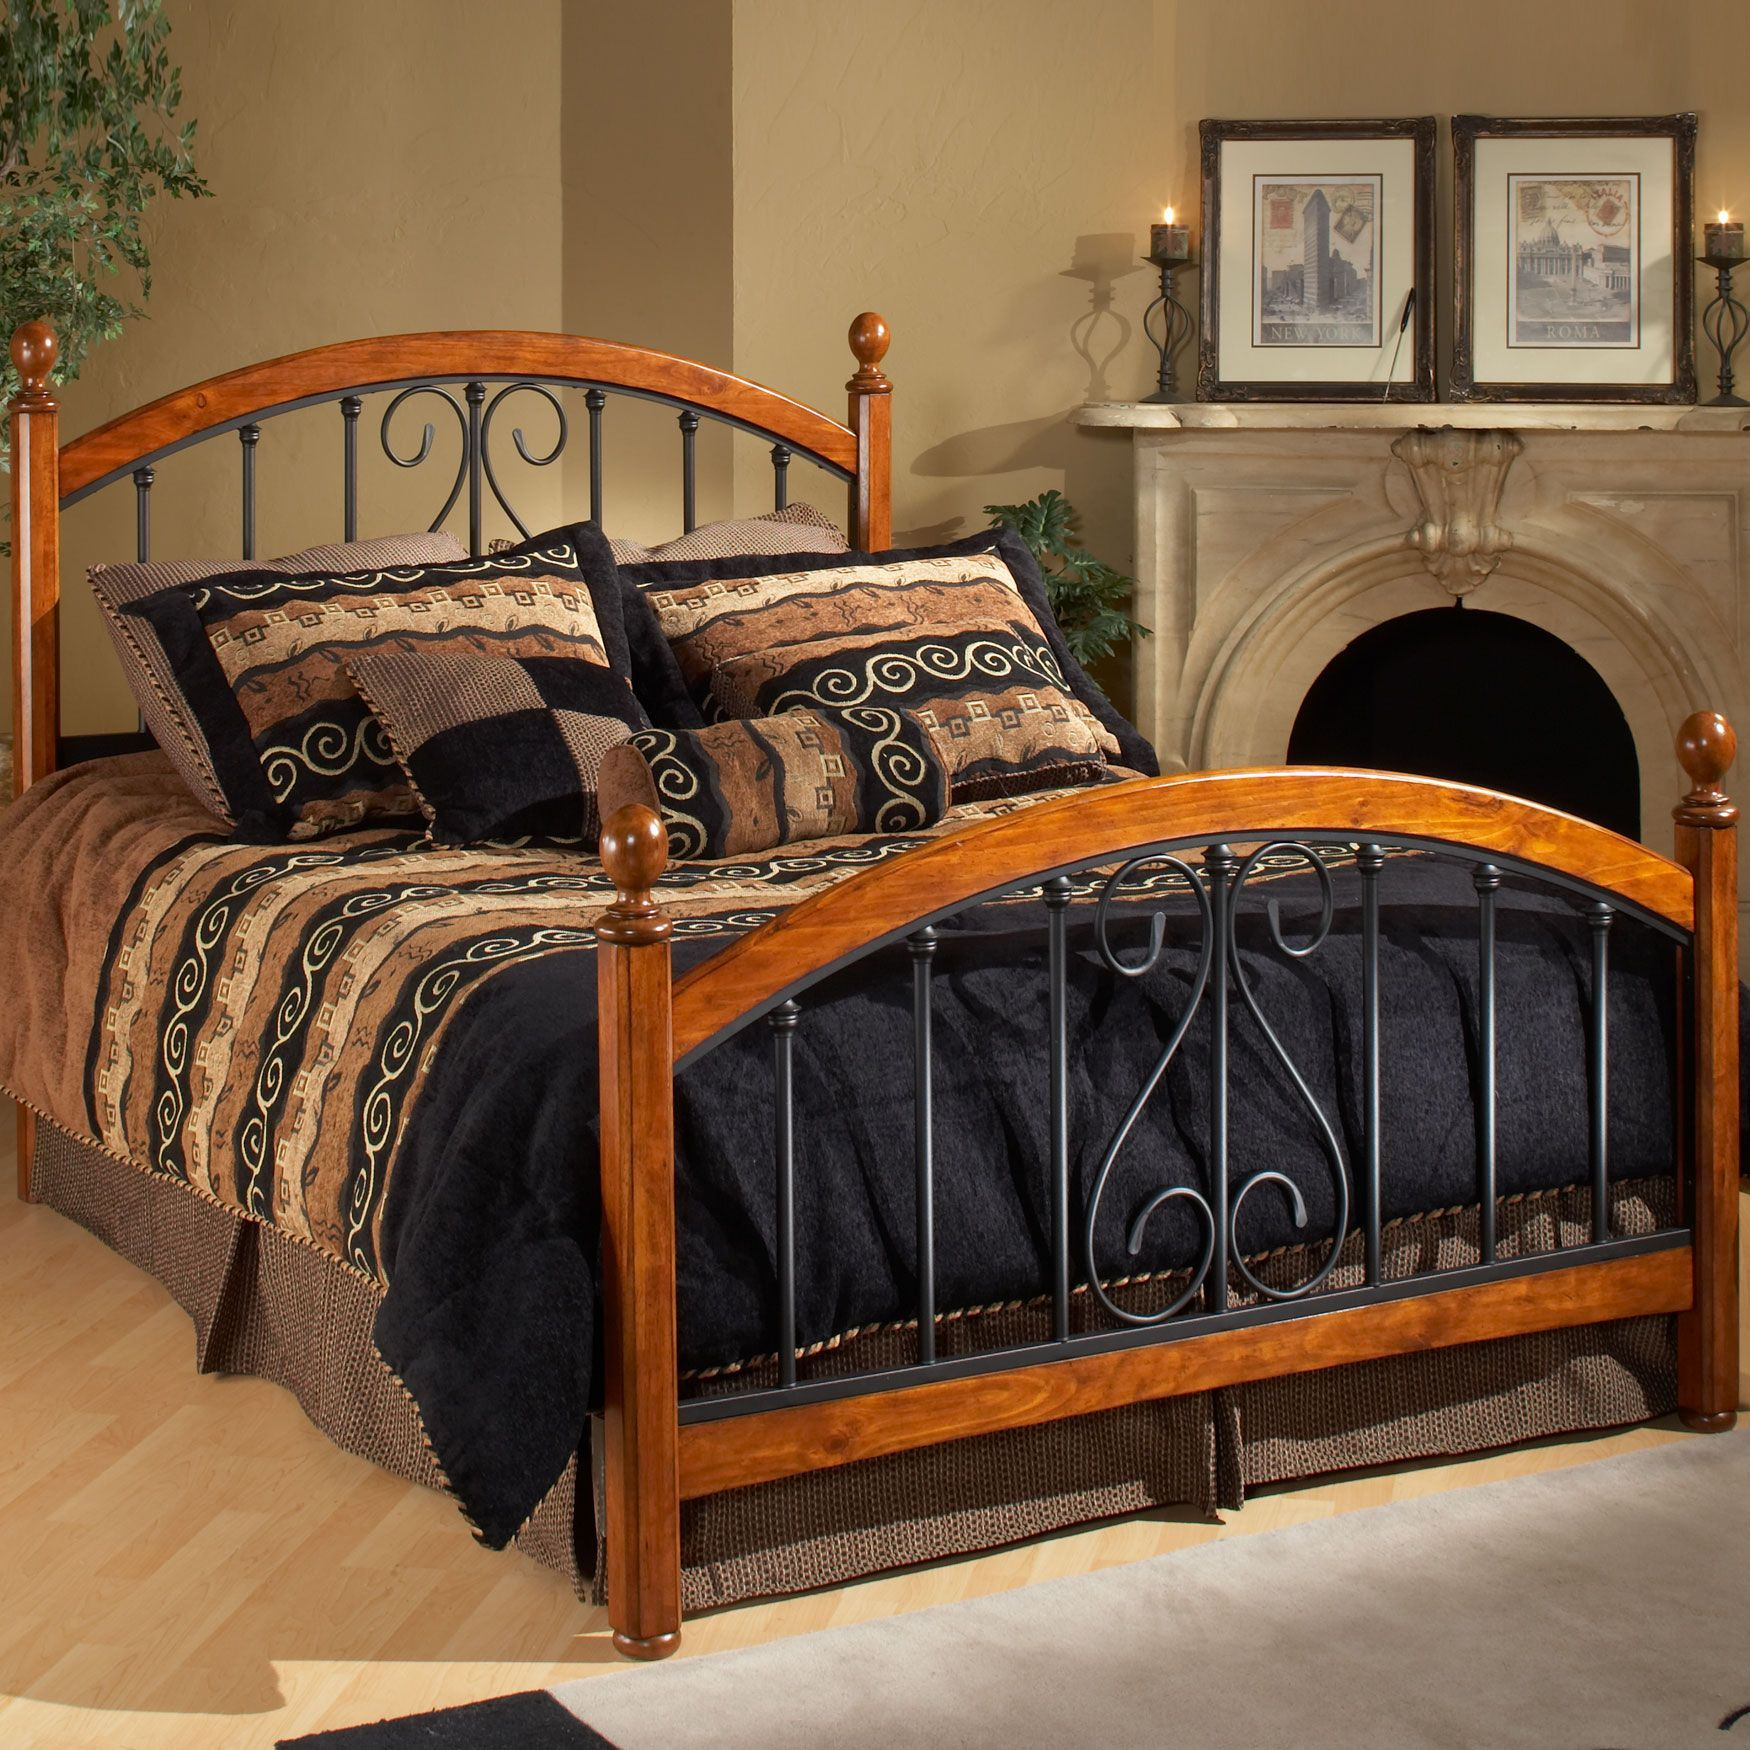 Hillsdale Burton Way Bed with Bed Frame,